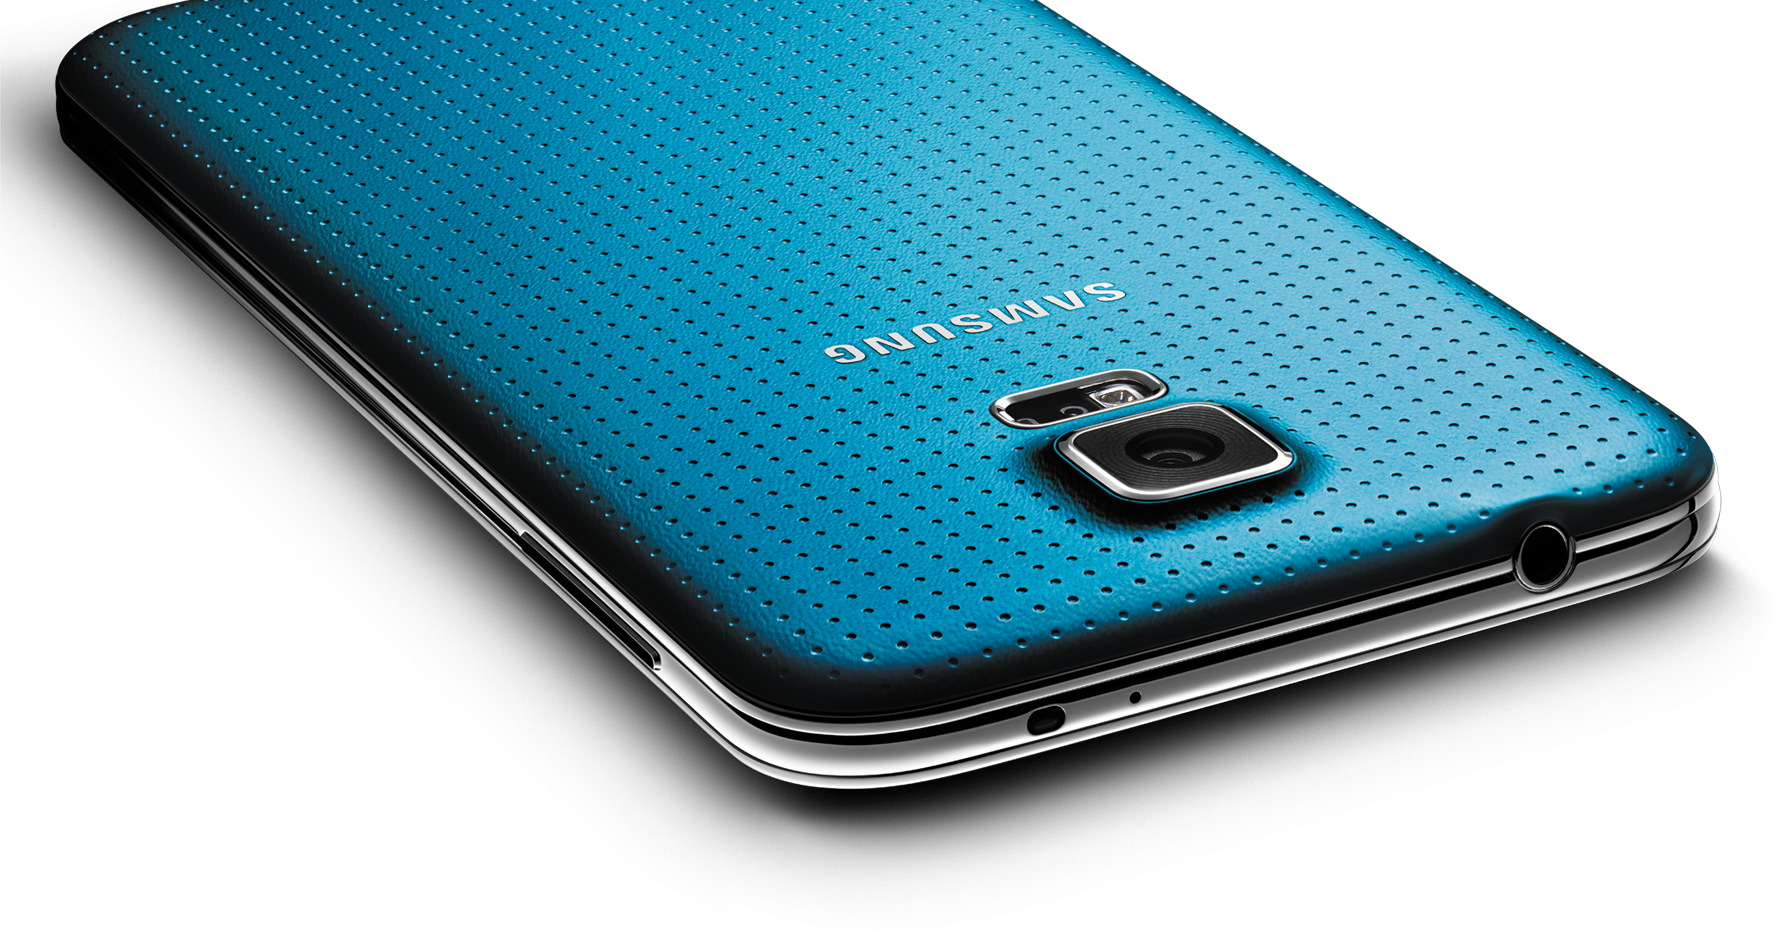 Samsung Galaxy S5 – The new even better thing is here!